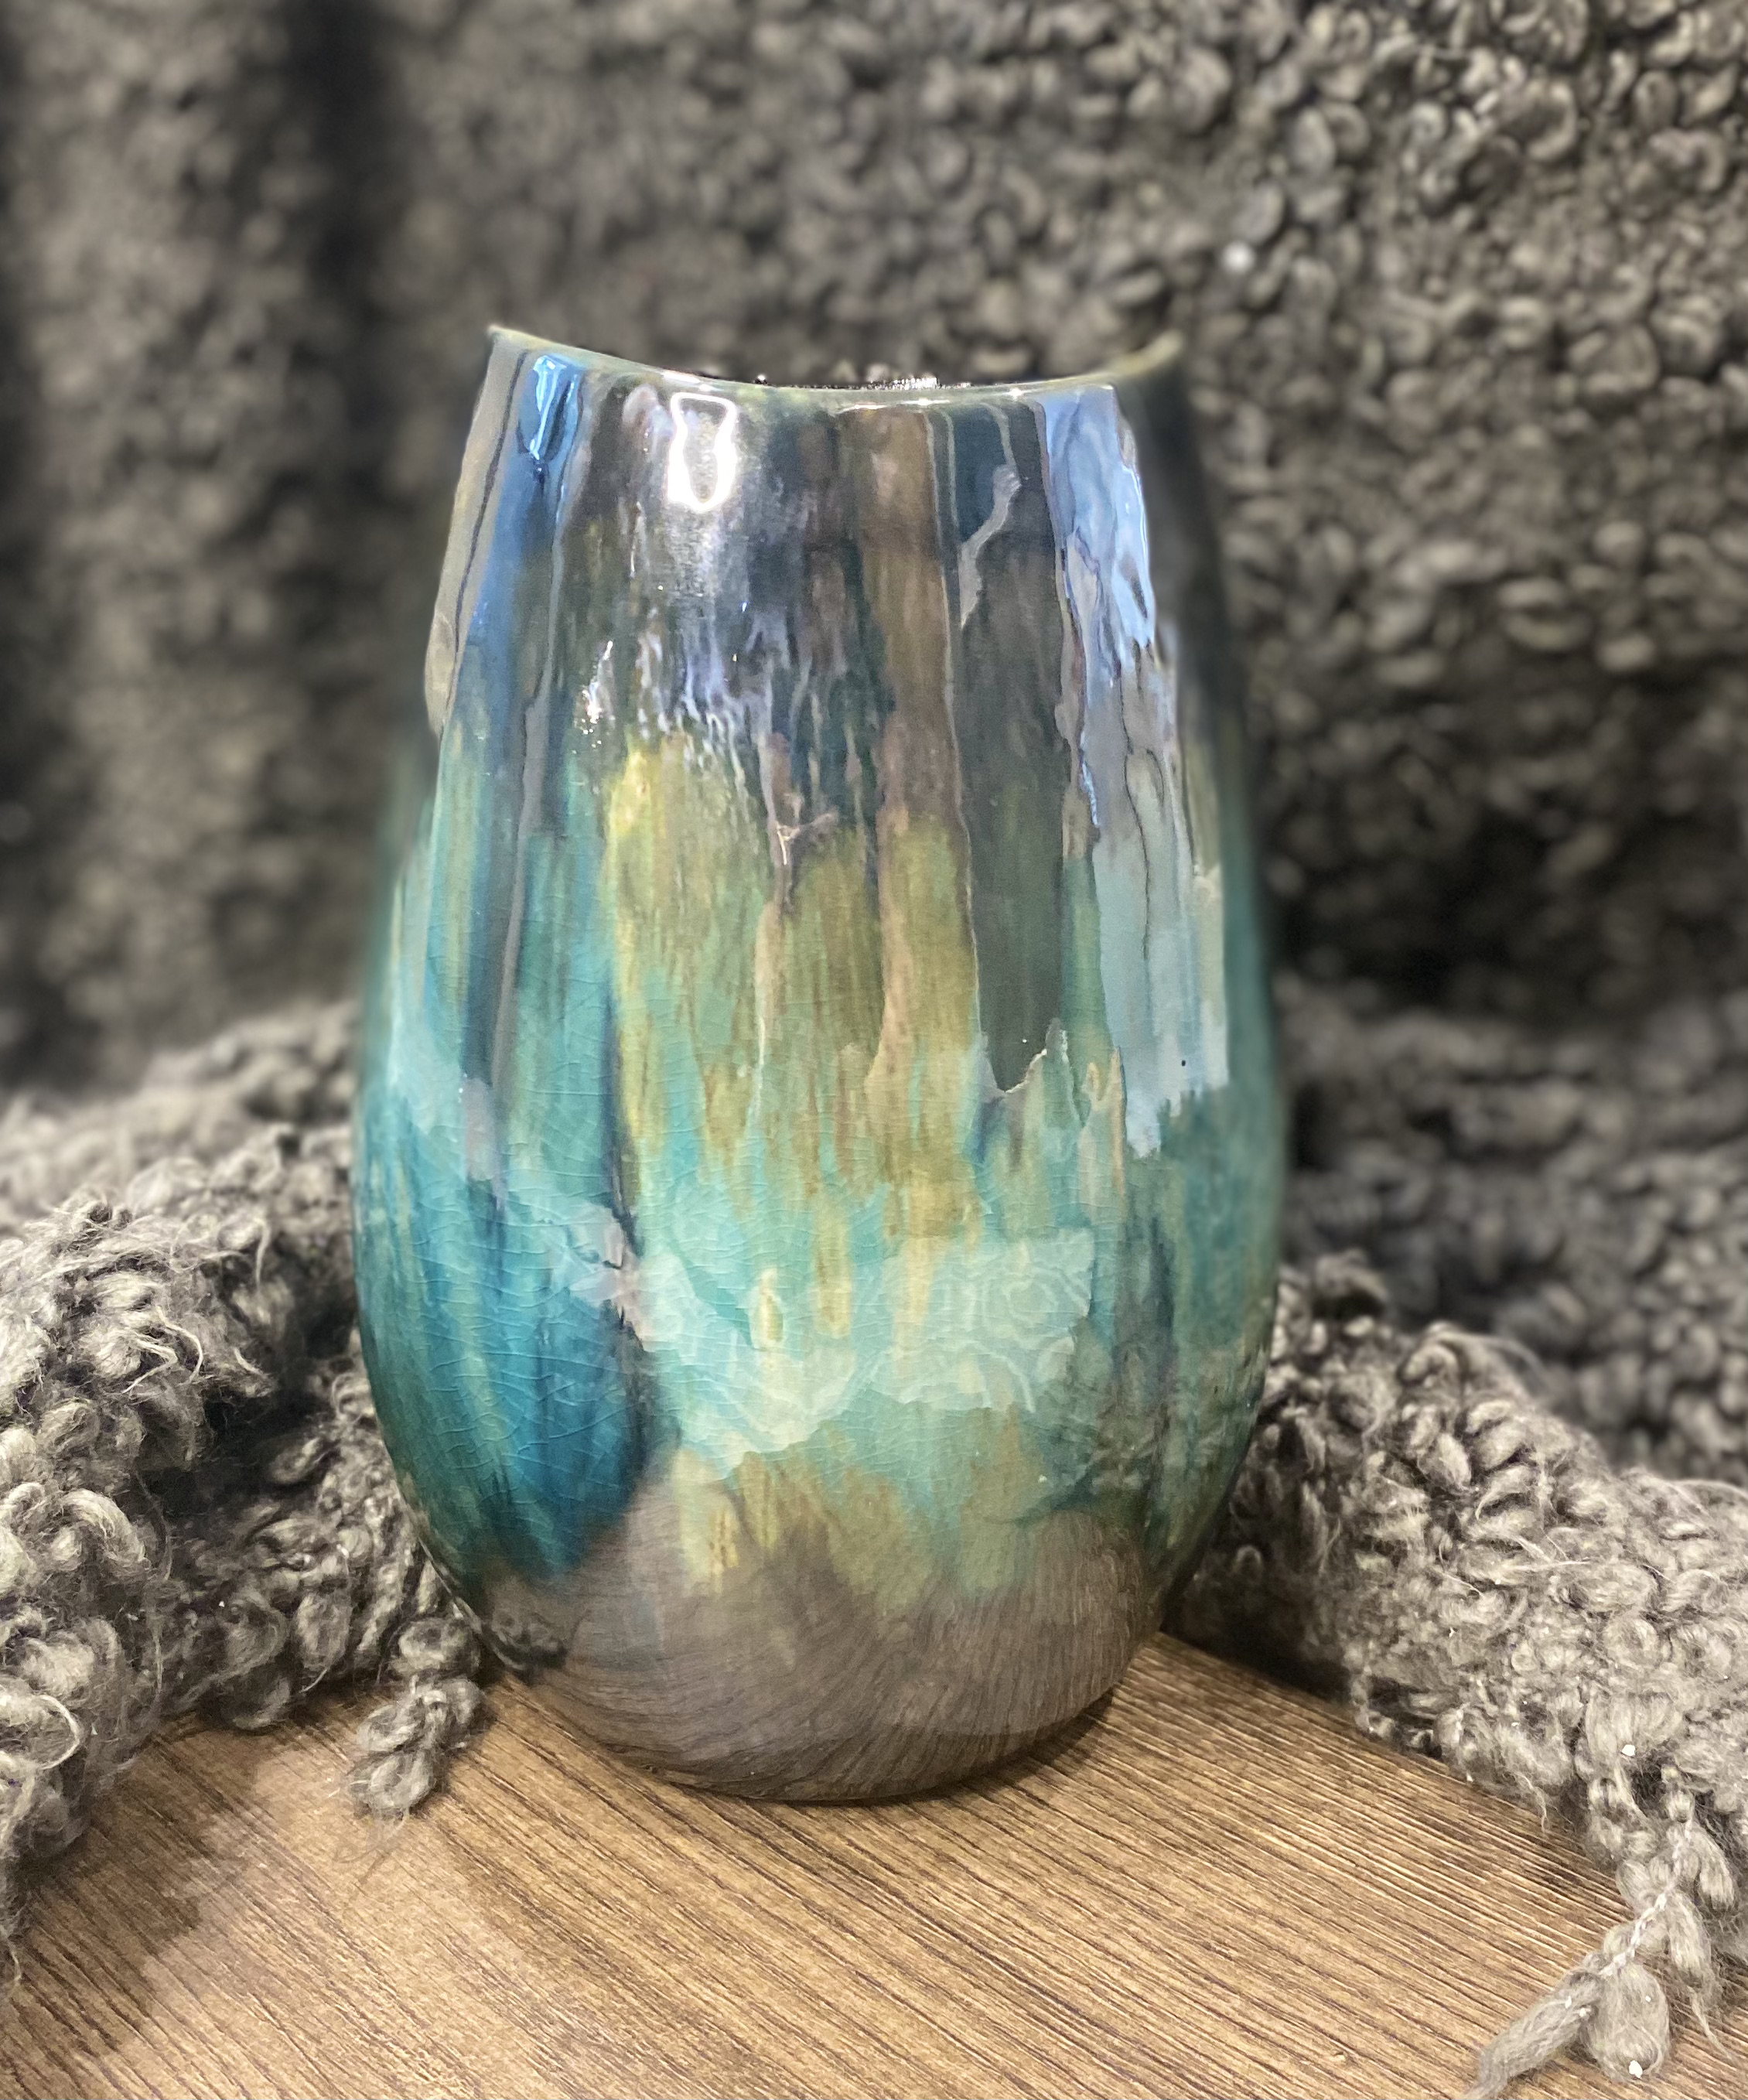 Reactive glazed vase sold by Mackenzie Paige Interiors in Hampshire